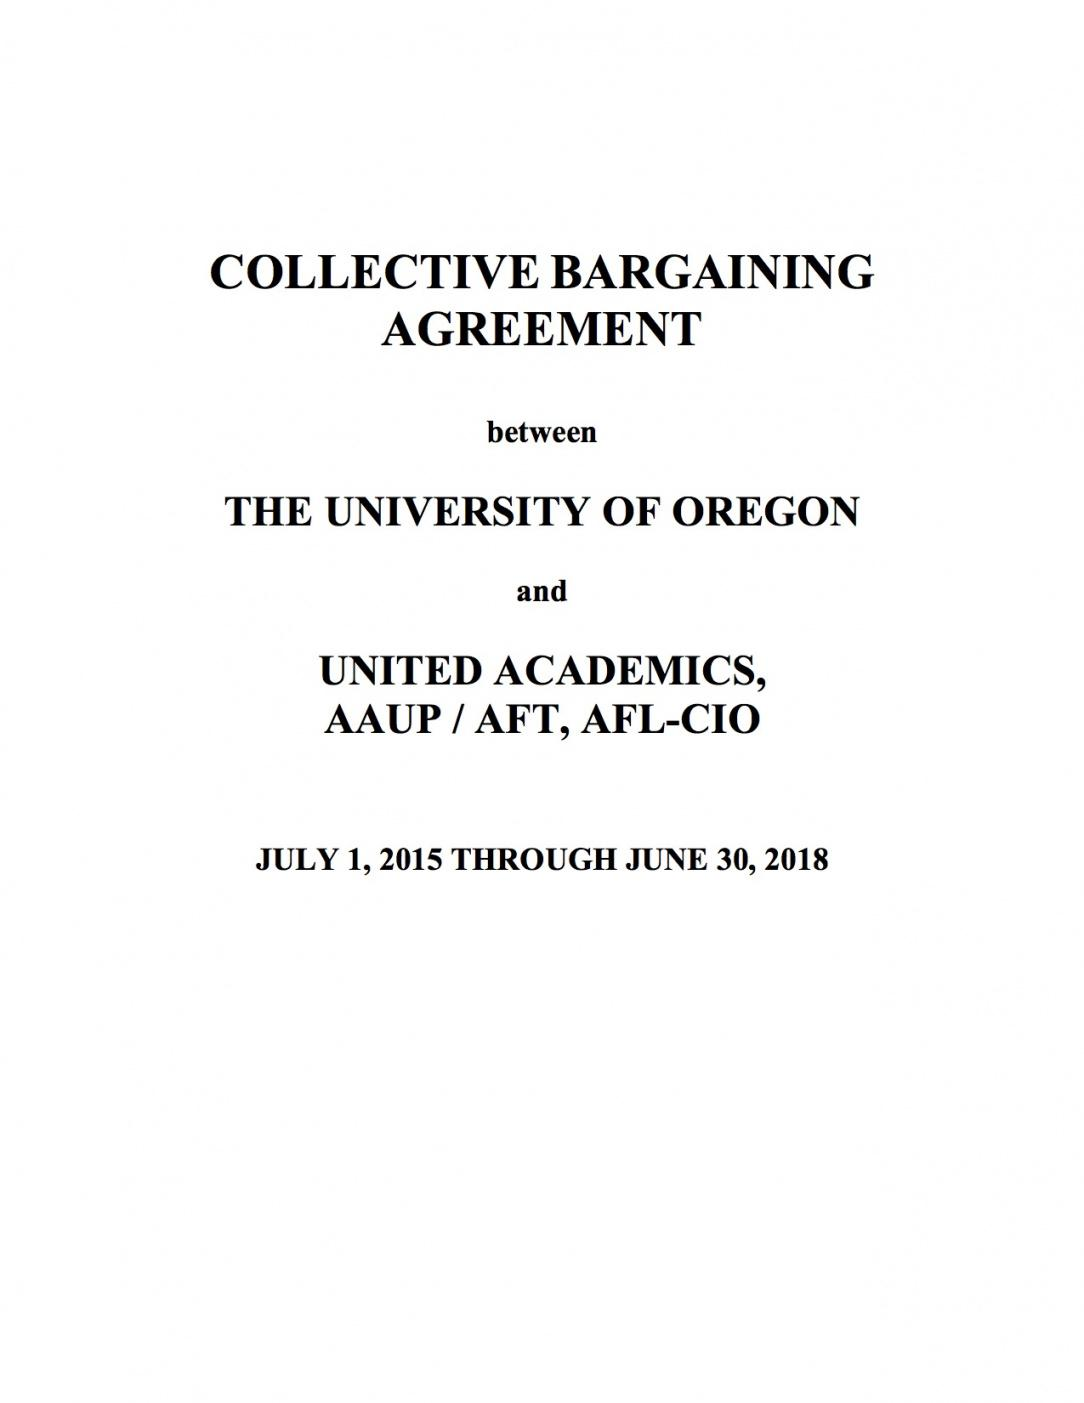 our our contract  united academics of the university of oregon collective bargaining agreement sample contract